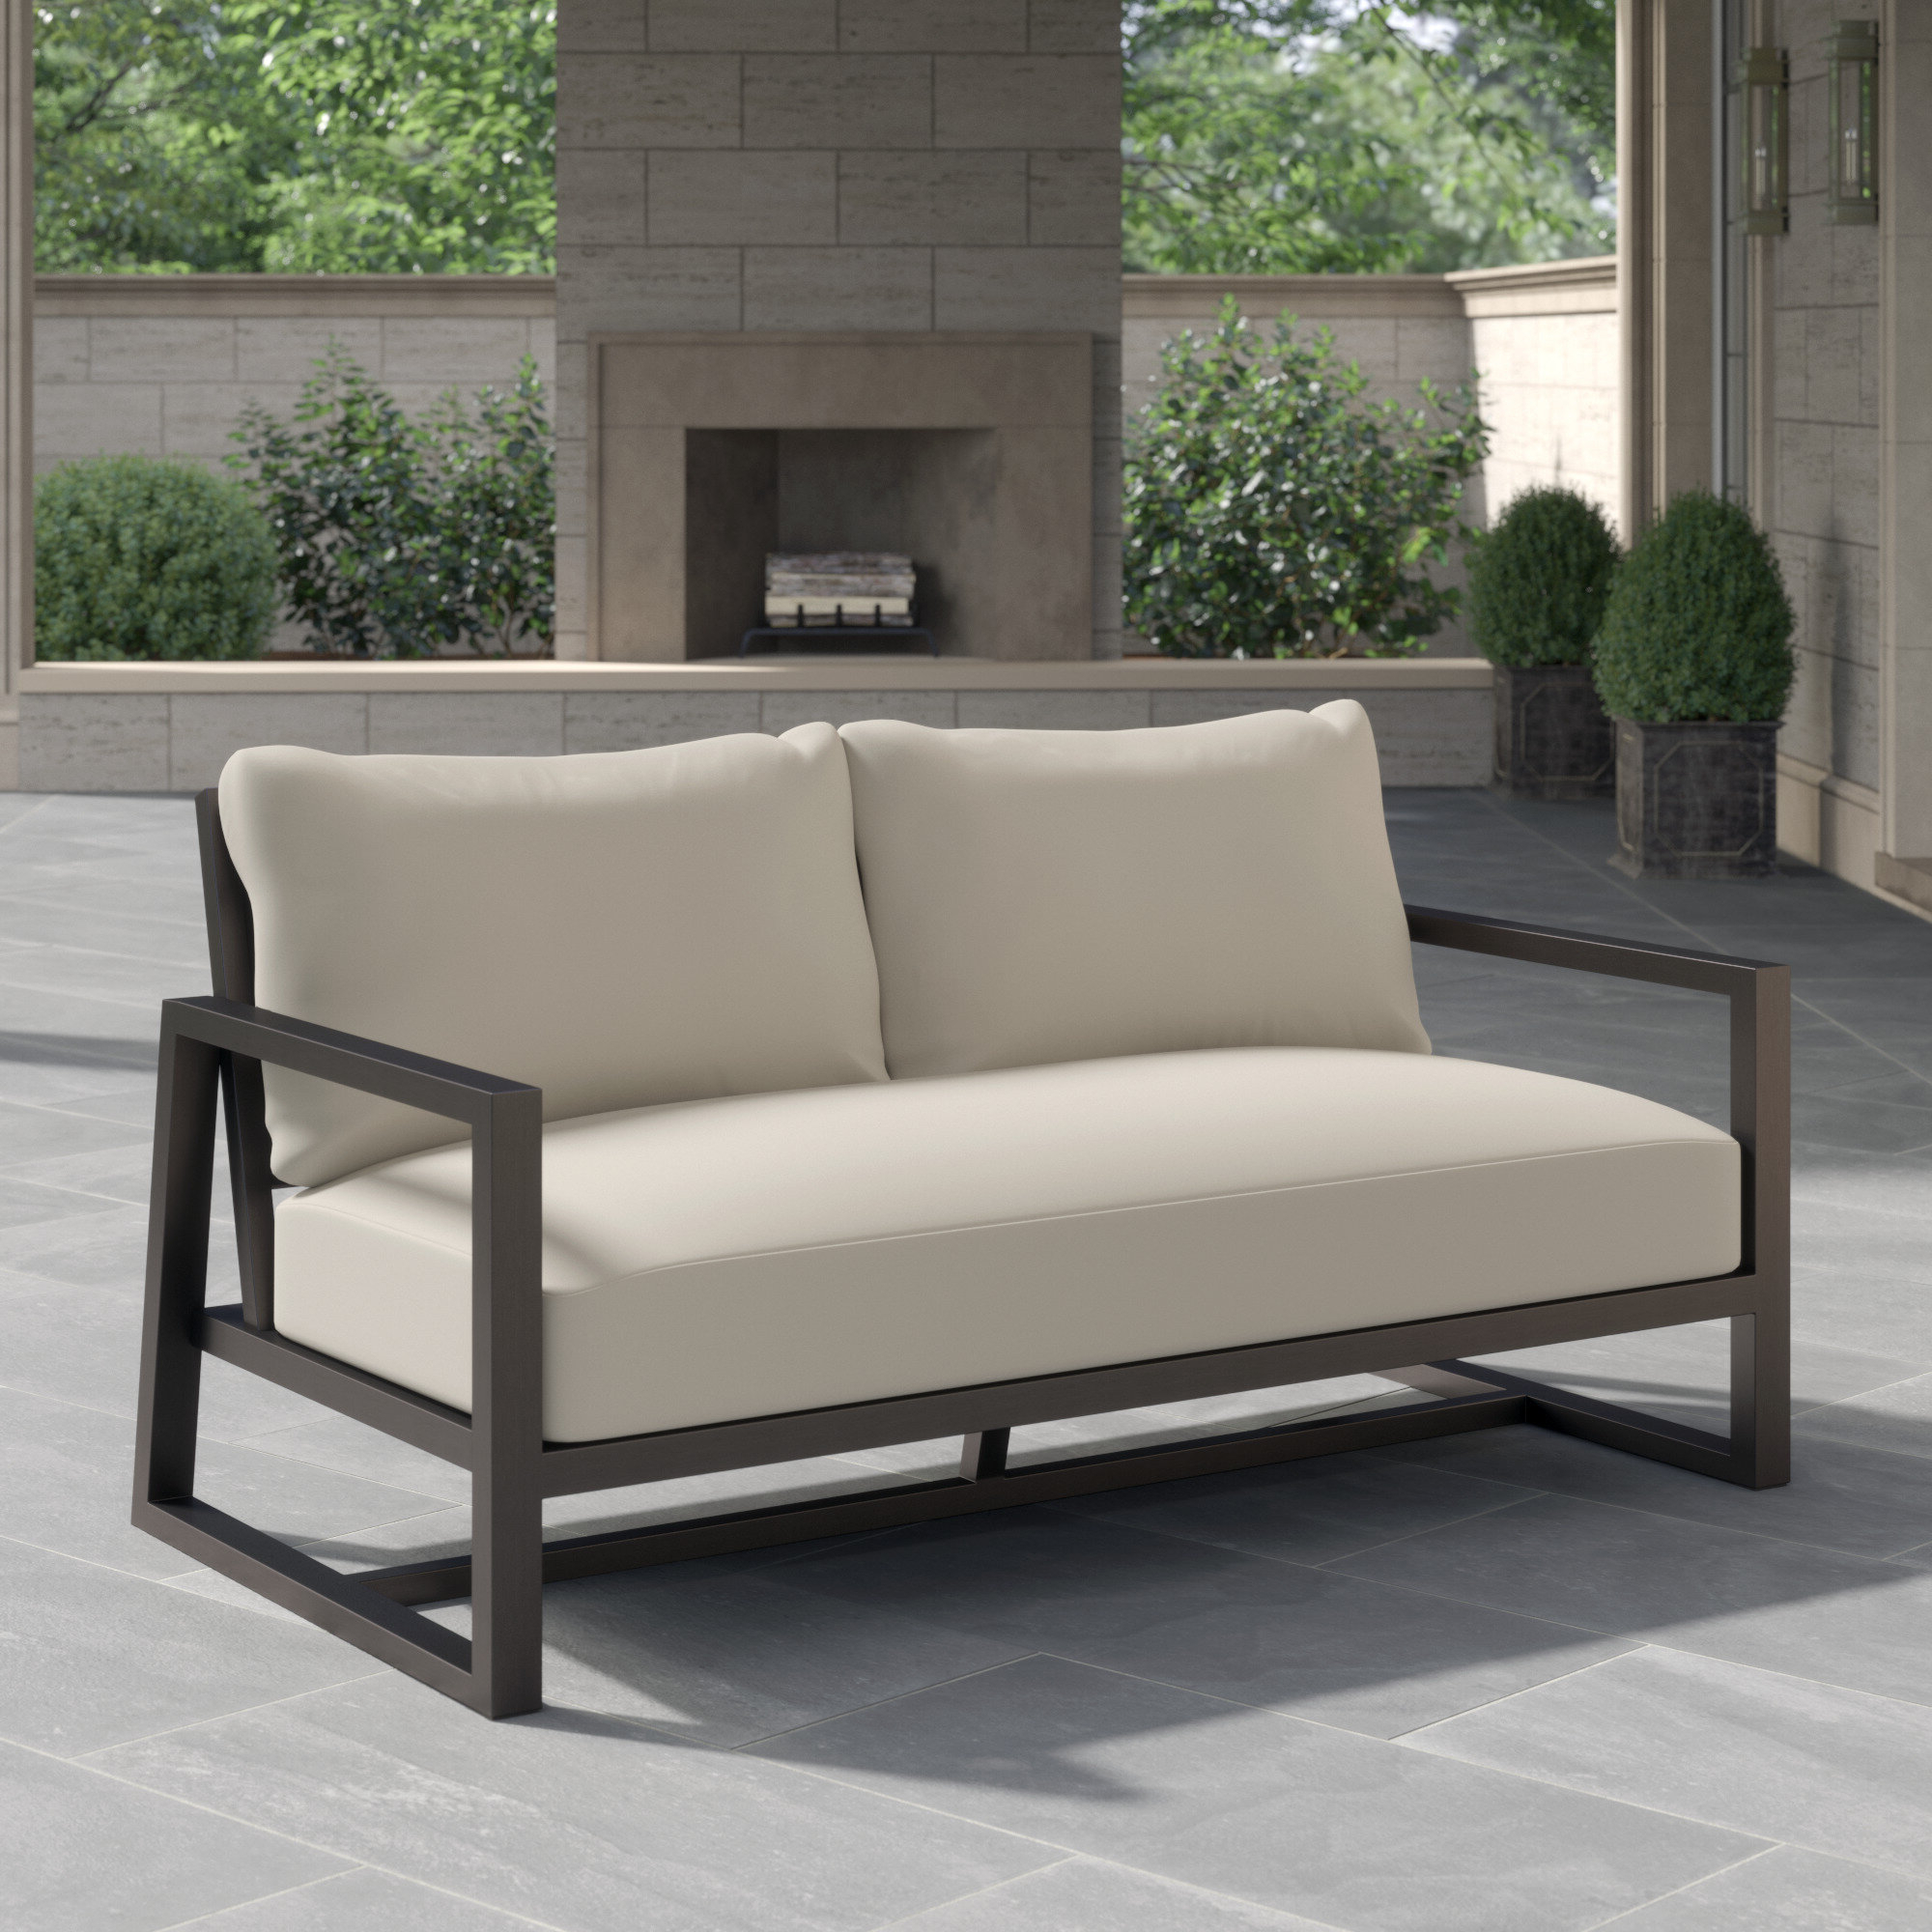 Sylvania Outdoor Loveseats Intended For Trendy Summer Classics Avondale Loveseat With Cushions (View 9 of 20)